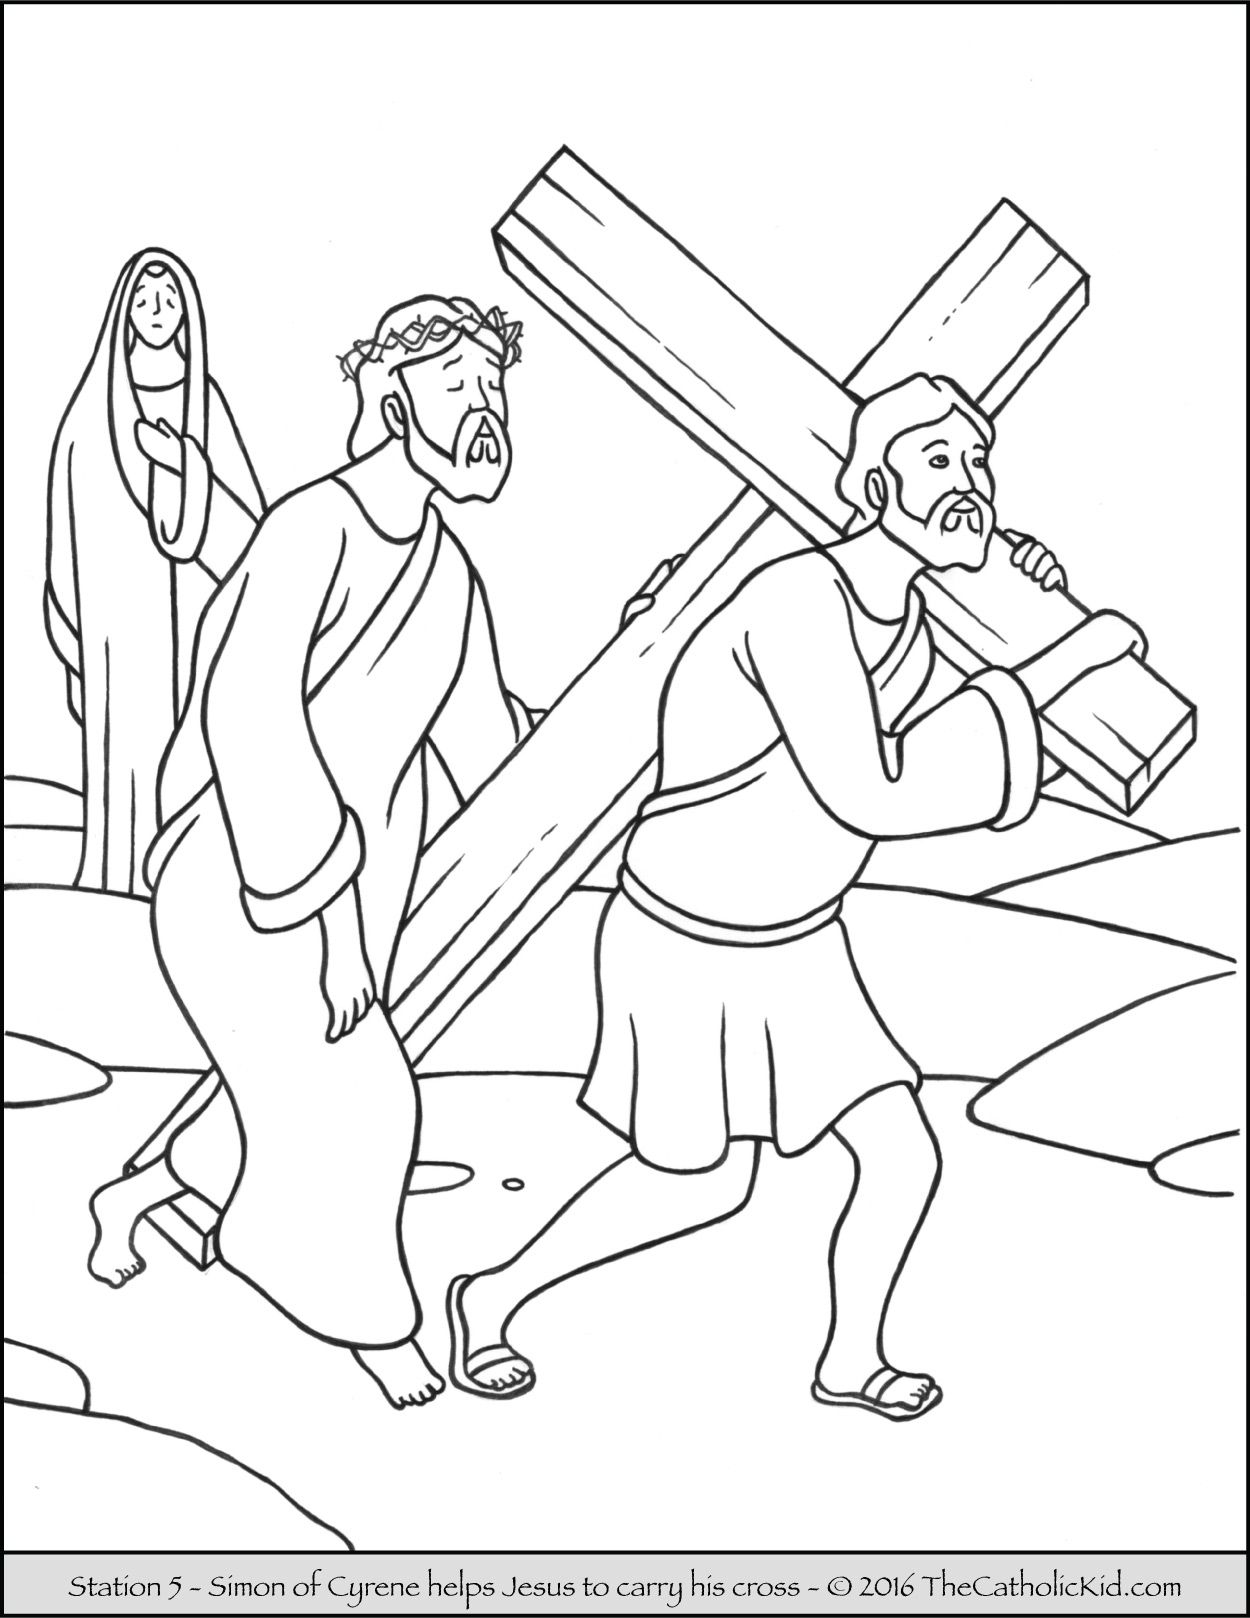 stations of the cross coloring stations of the cross coloring pages 6 veronica wipes the stations coloring of cross